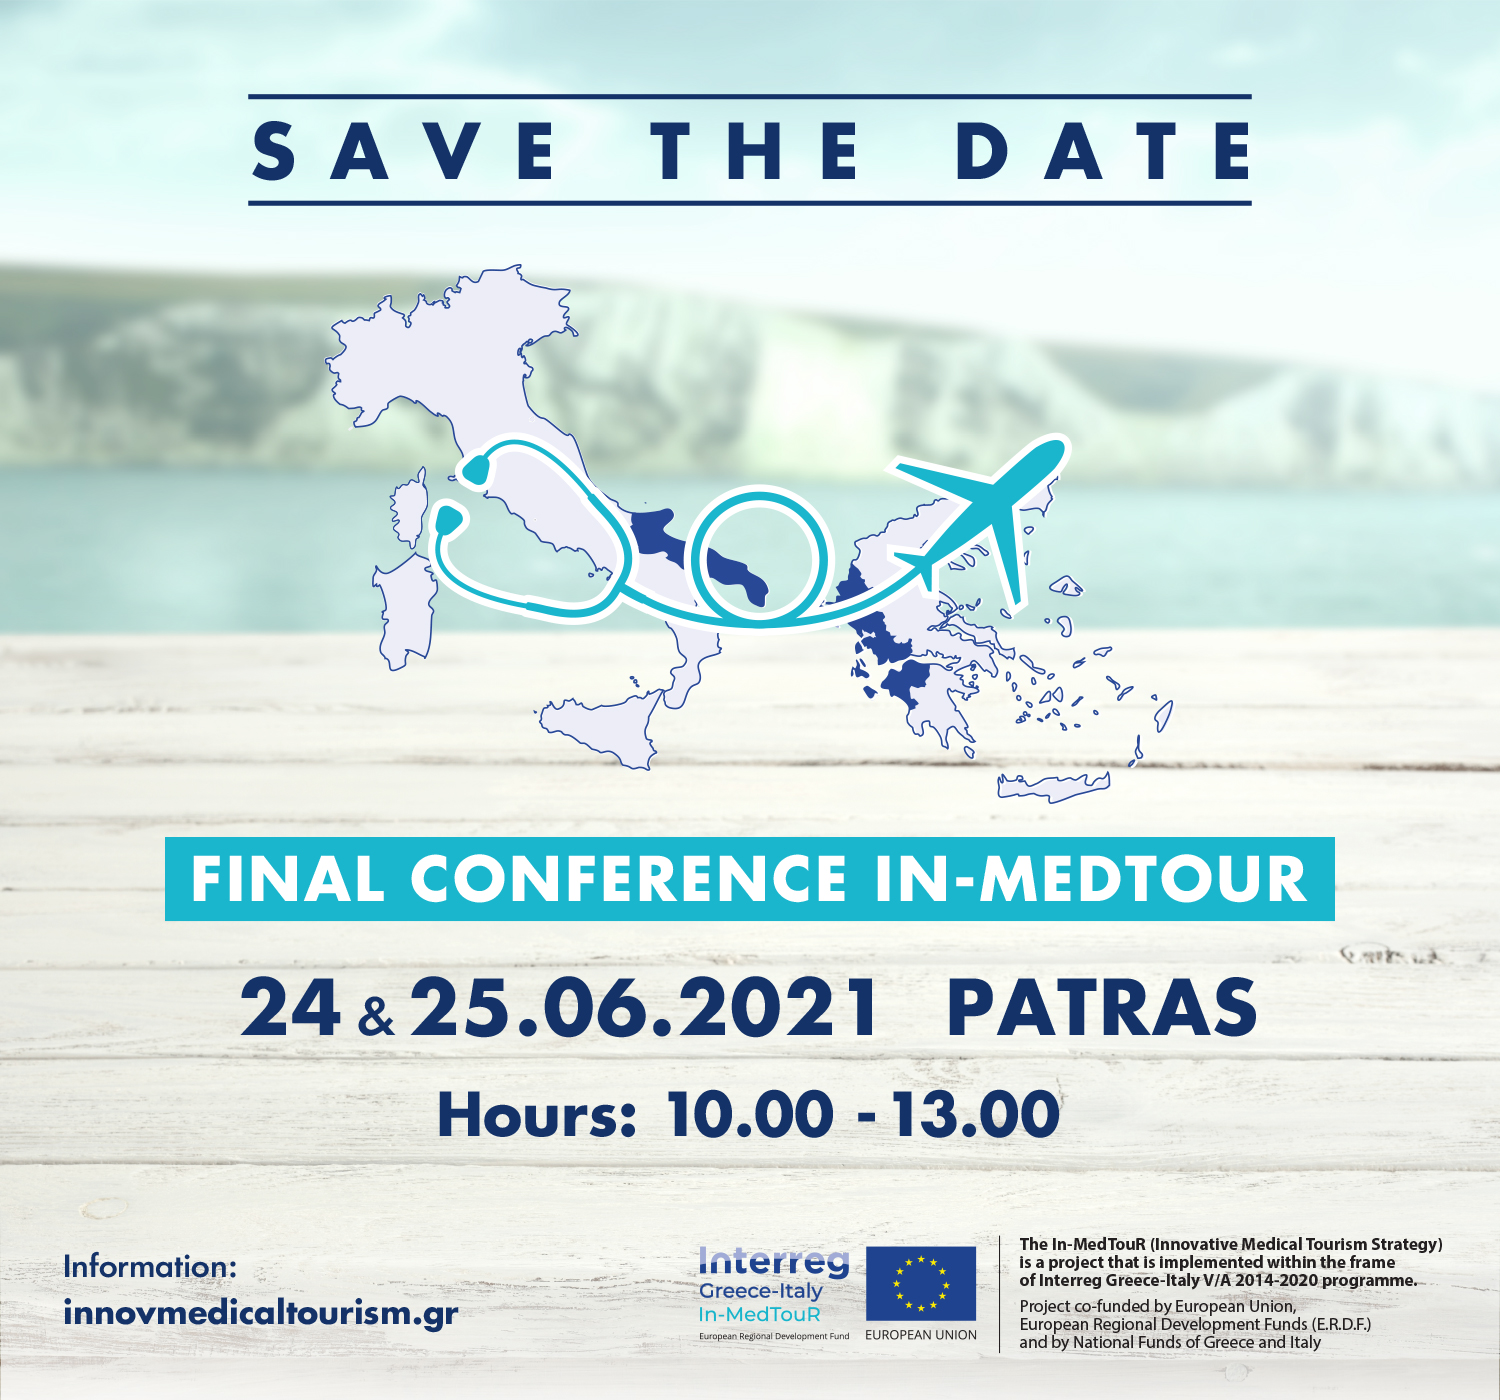 InMedTour - Save the Date